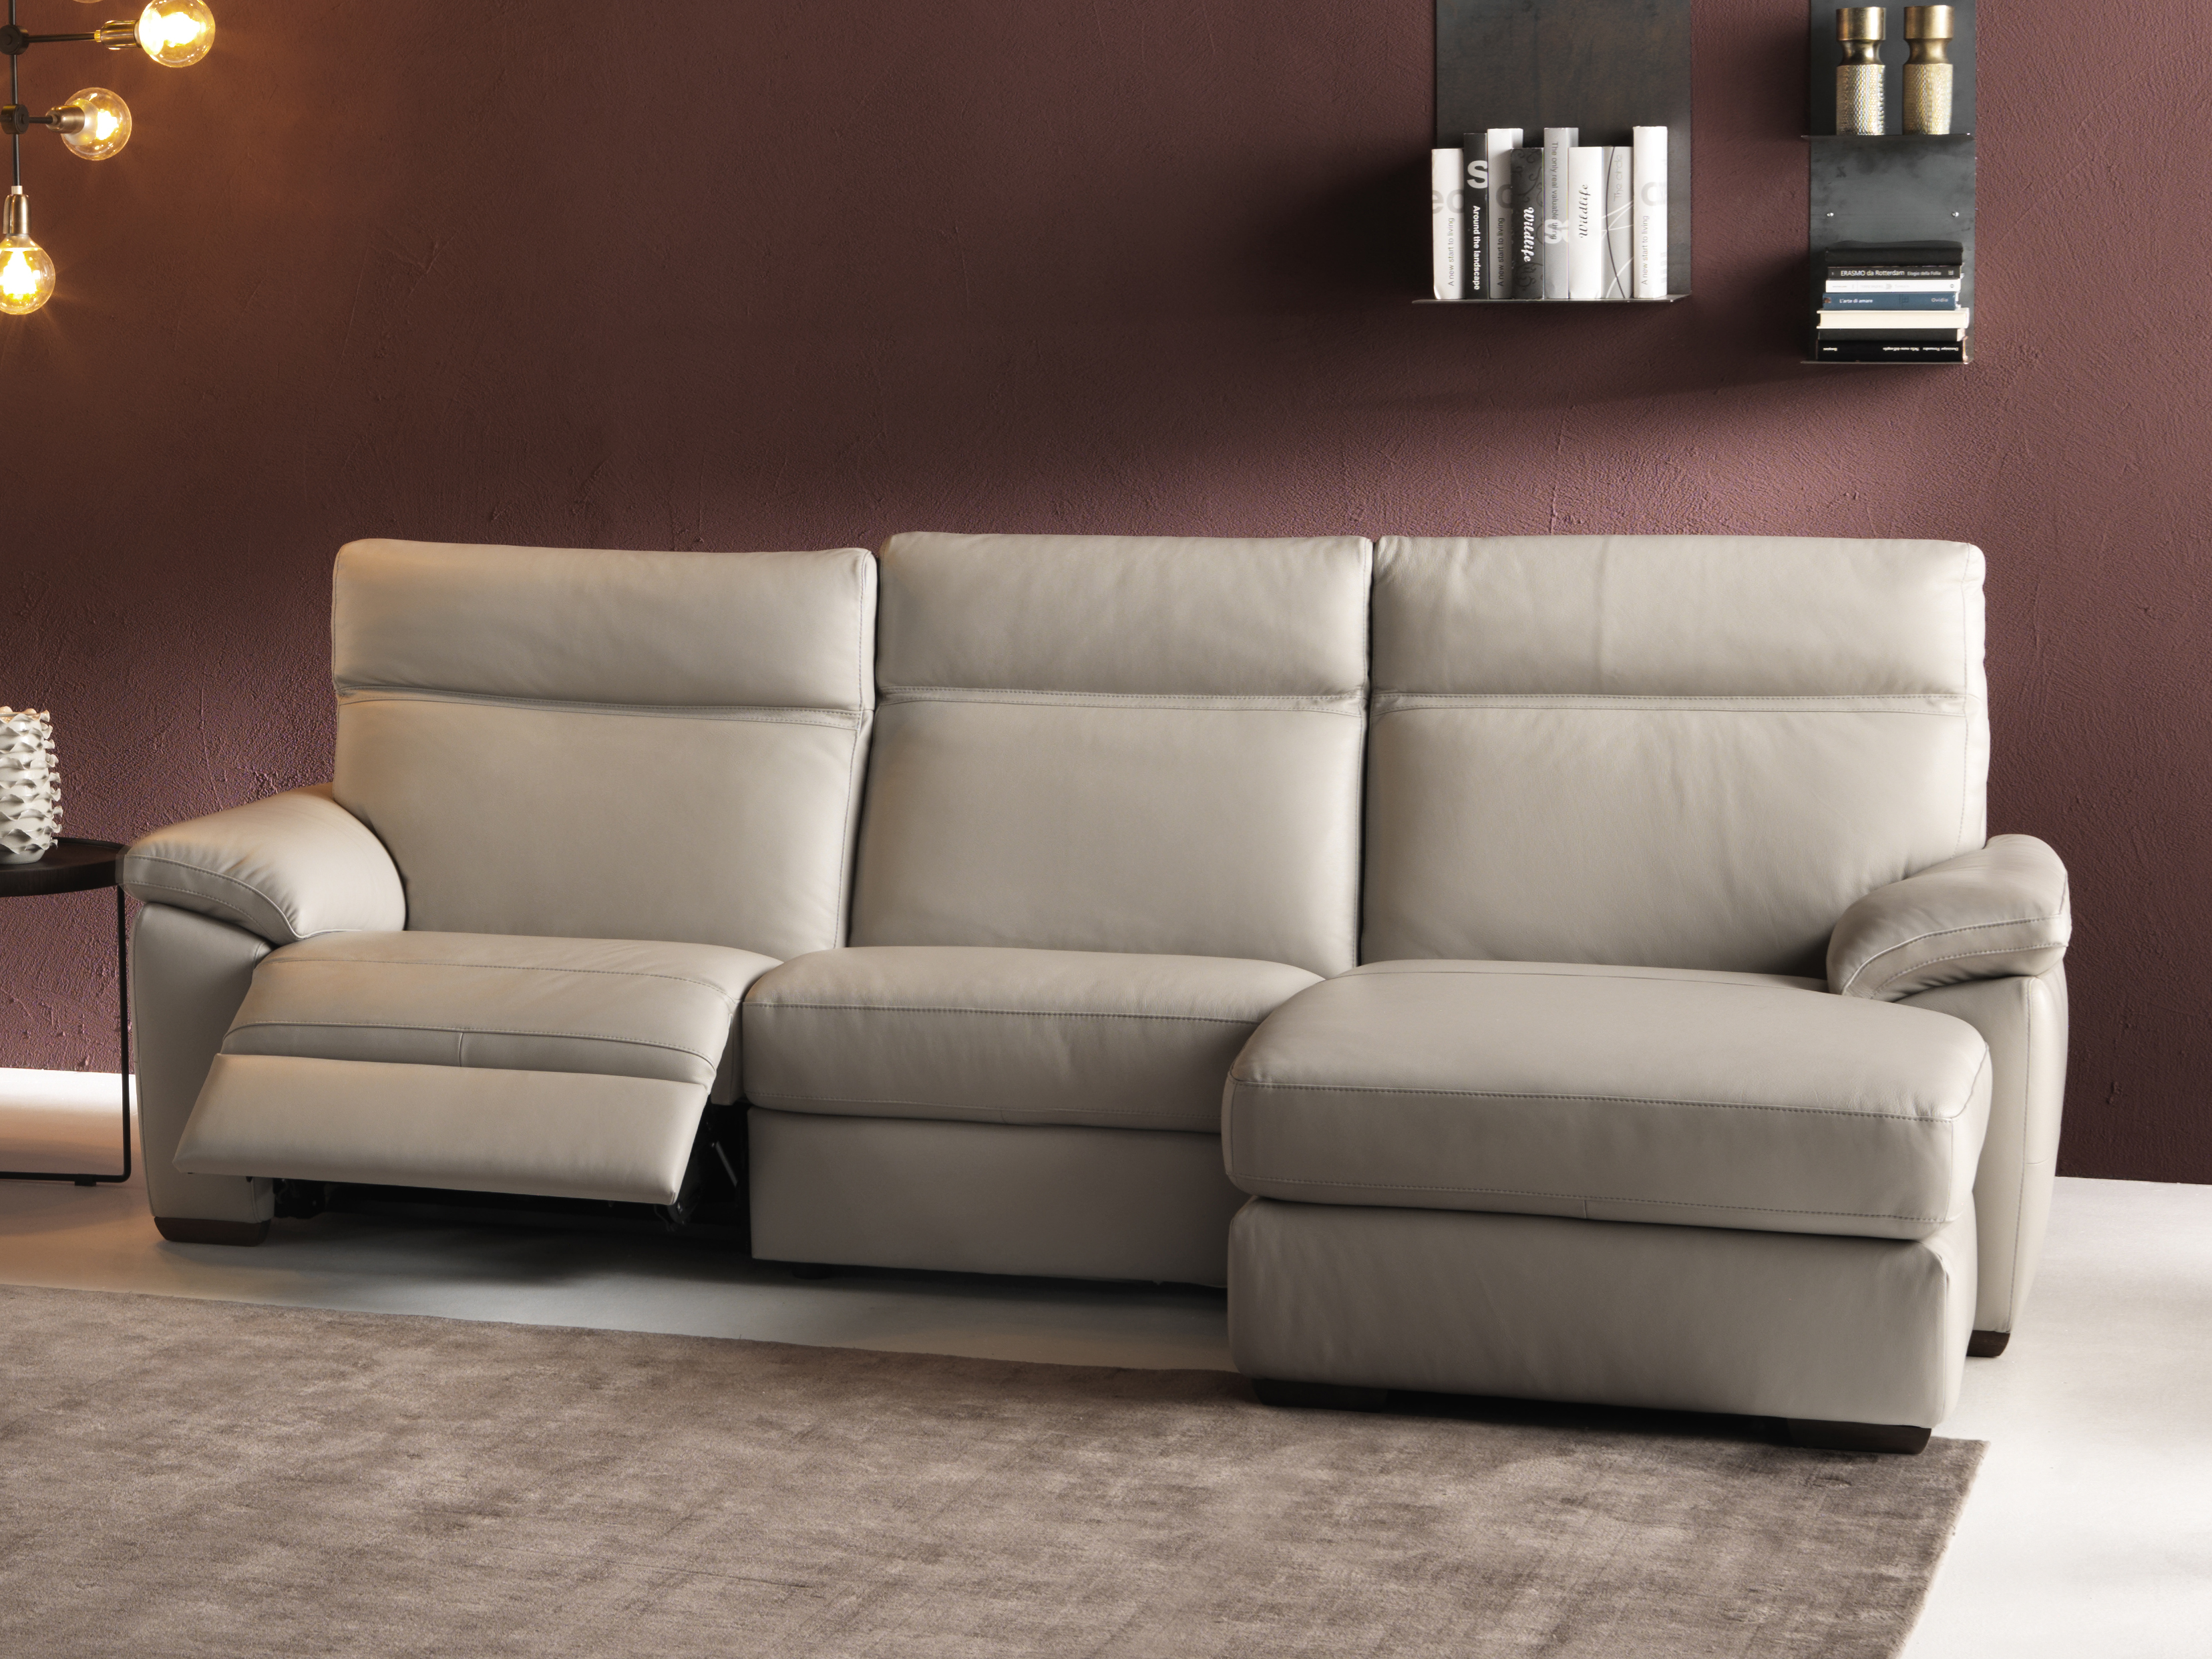 Natuzzi Editions Empatia Sectional Sofa